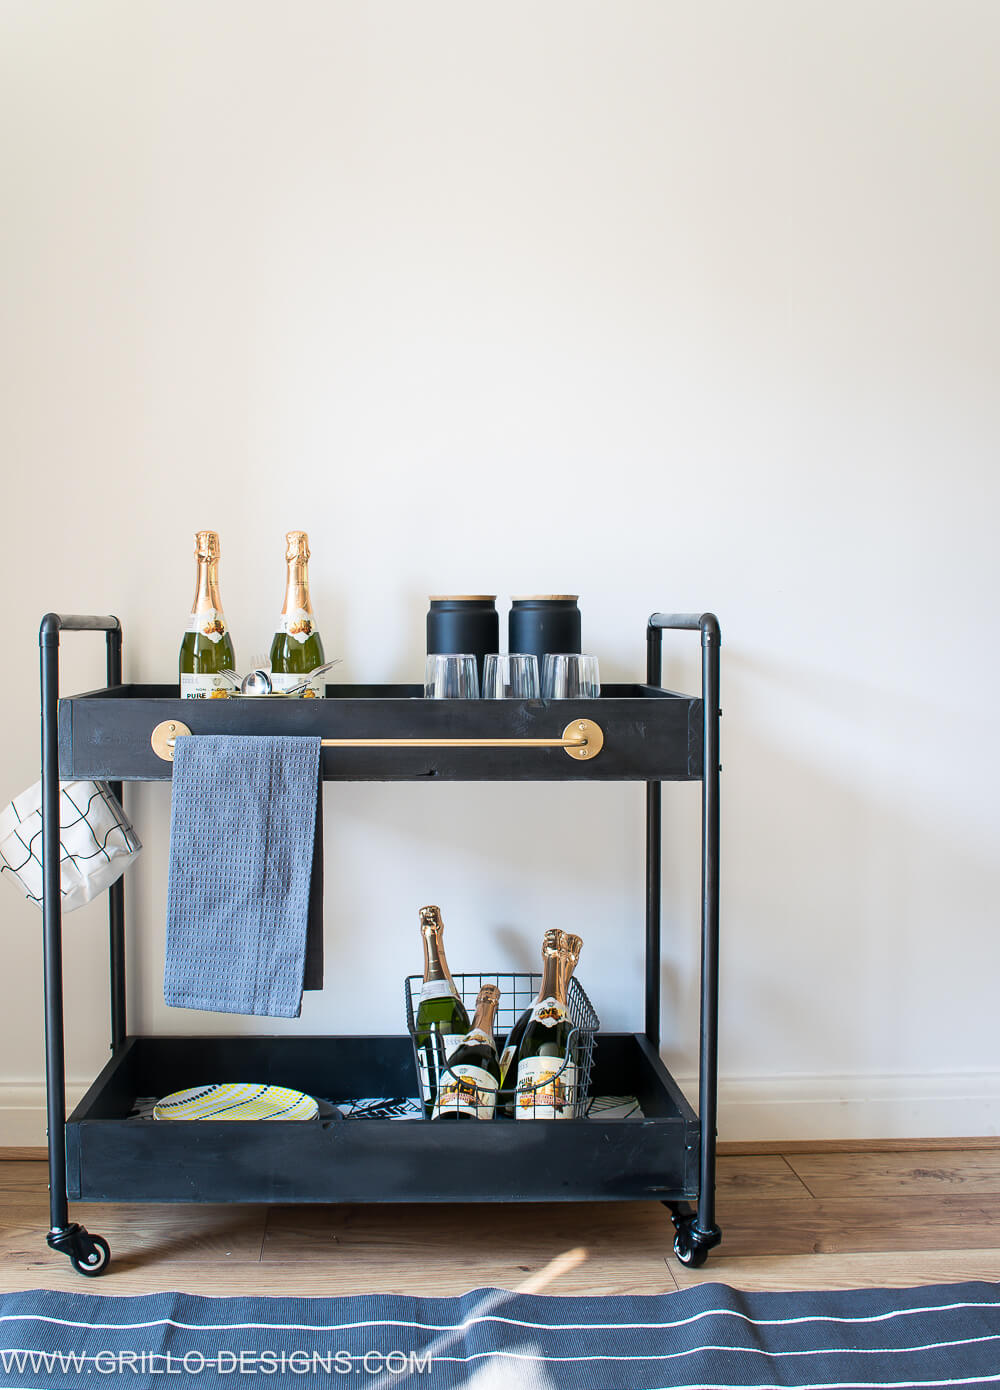 Indoors rolling bar cart for serving guests / grillo designs